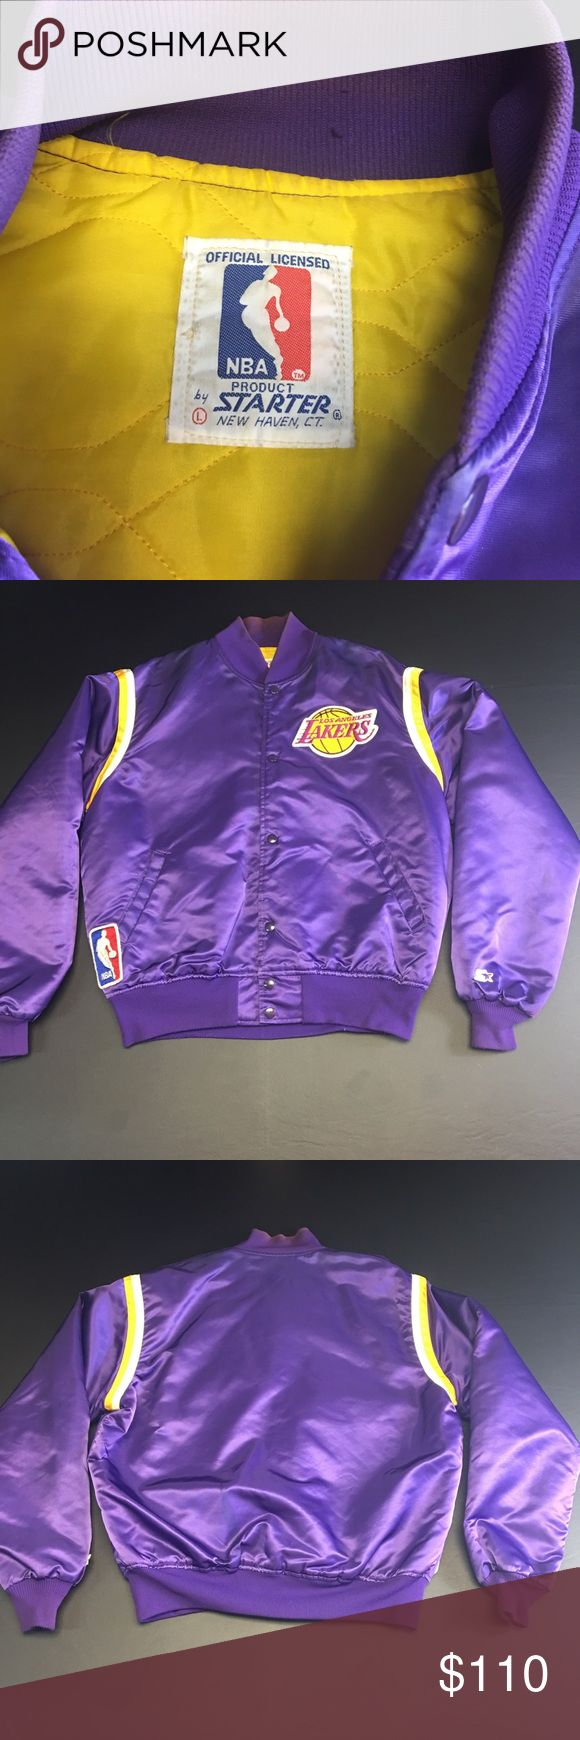 Vintage Los Angeles Lakers Satin Starter Jacket Vintage Men's Large Purple Los Angeles Lakers Satin Starter Jacket. Jacket is preowned and in good condition with one minor flaw. The collar shows signs of discoloration and fading. These style jackets run a size smaller than actual size. Fits like a Men's Medium. Traded a flawless jacket for this. My loss is your gain. Price is reflected by flaw. Starter Jackets & Coats Bomber & Varsity